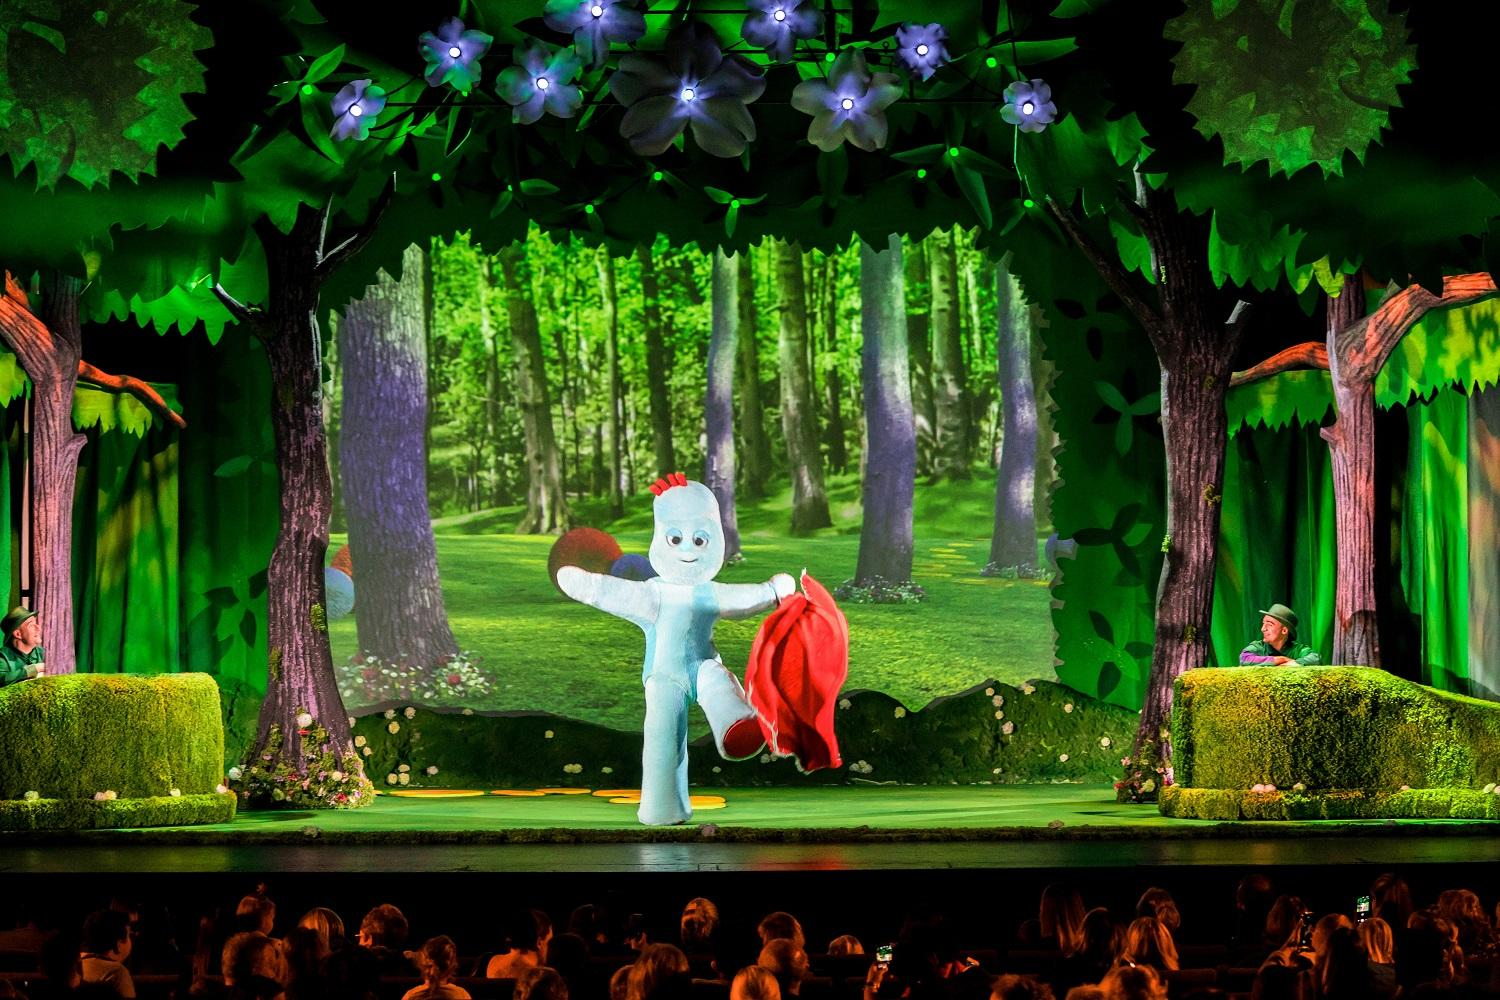 Image of Iggle Piggle dancing